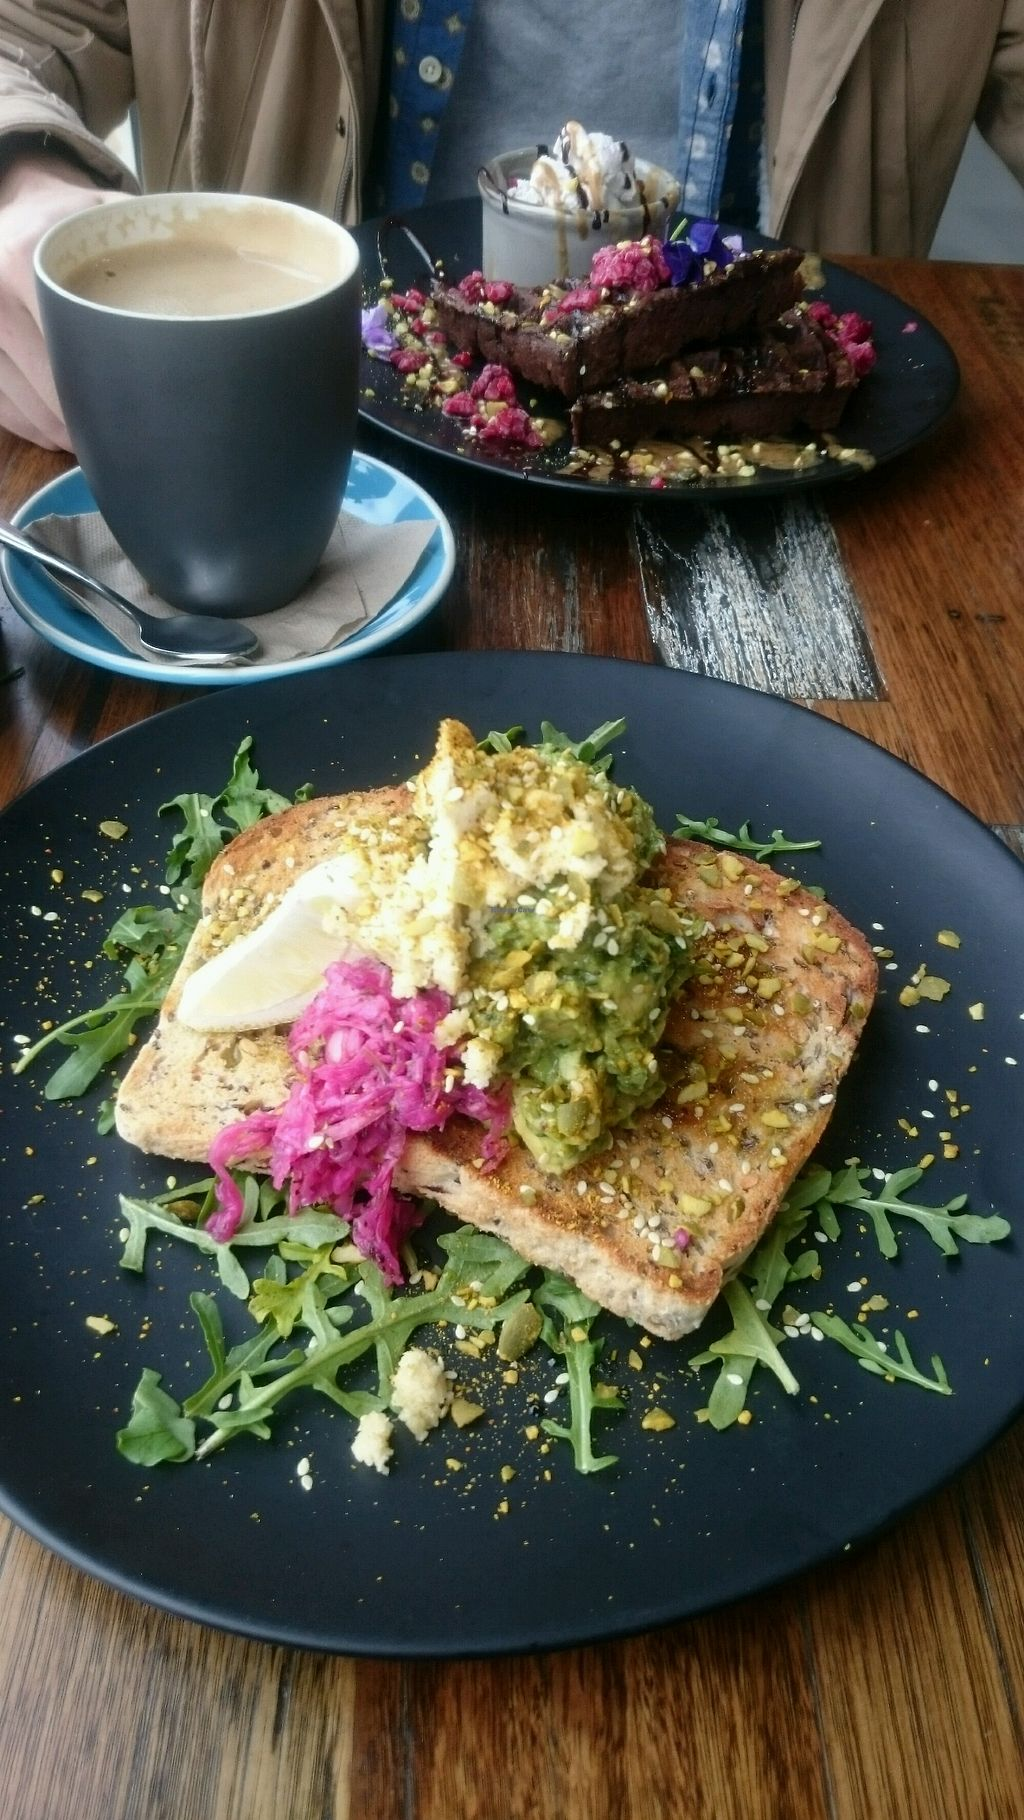 "Photo of Wholefood Merchants Kitchen  by <a href=""/members/profile/MoniqueFiedler"">MoniqueFiedler</a> <br/>Smashed Avo on toast  <br/> August 24, 2017  - <a href='/contact/abuse/image/66926/296540'>Report</a>"